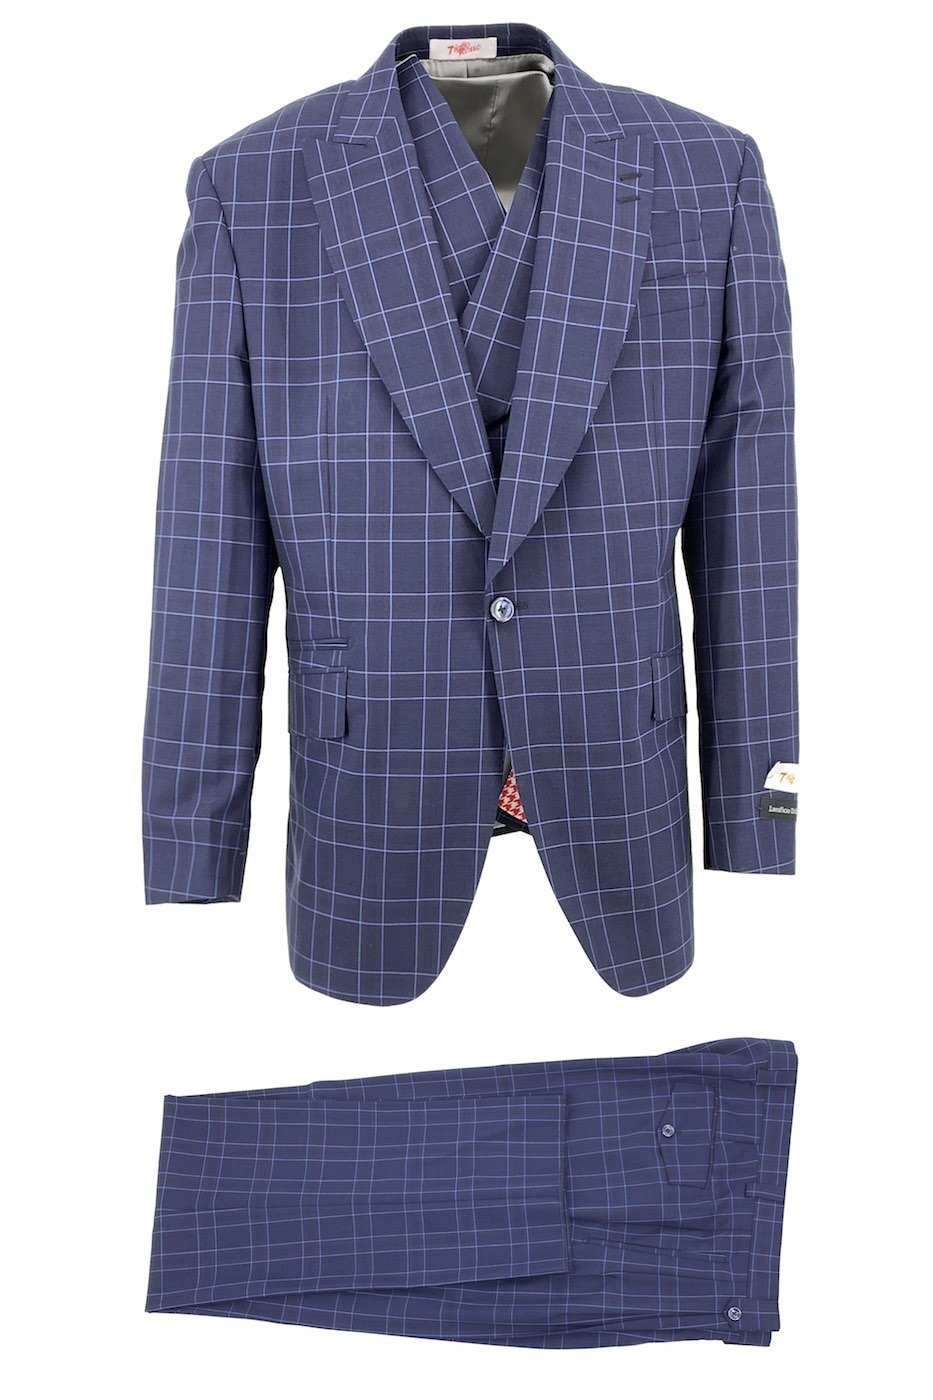 Tiglio Rosso Navy with Light Blue Windowpane New Rosso, Wide Leg Pure Wool Suit & Vest TLS20054/1